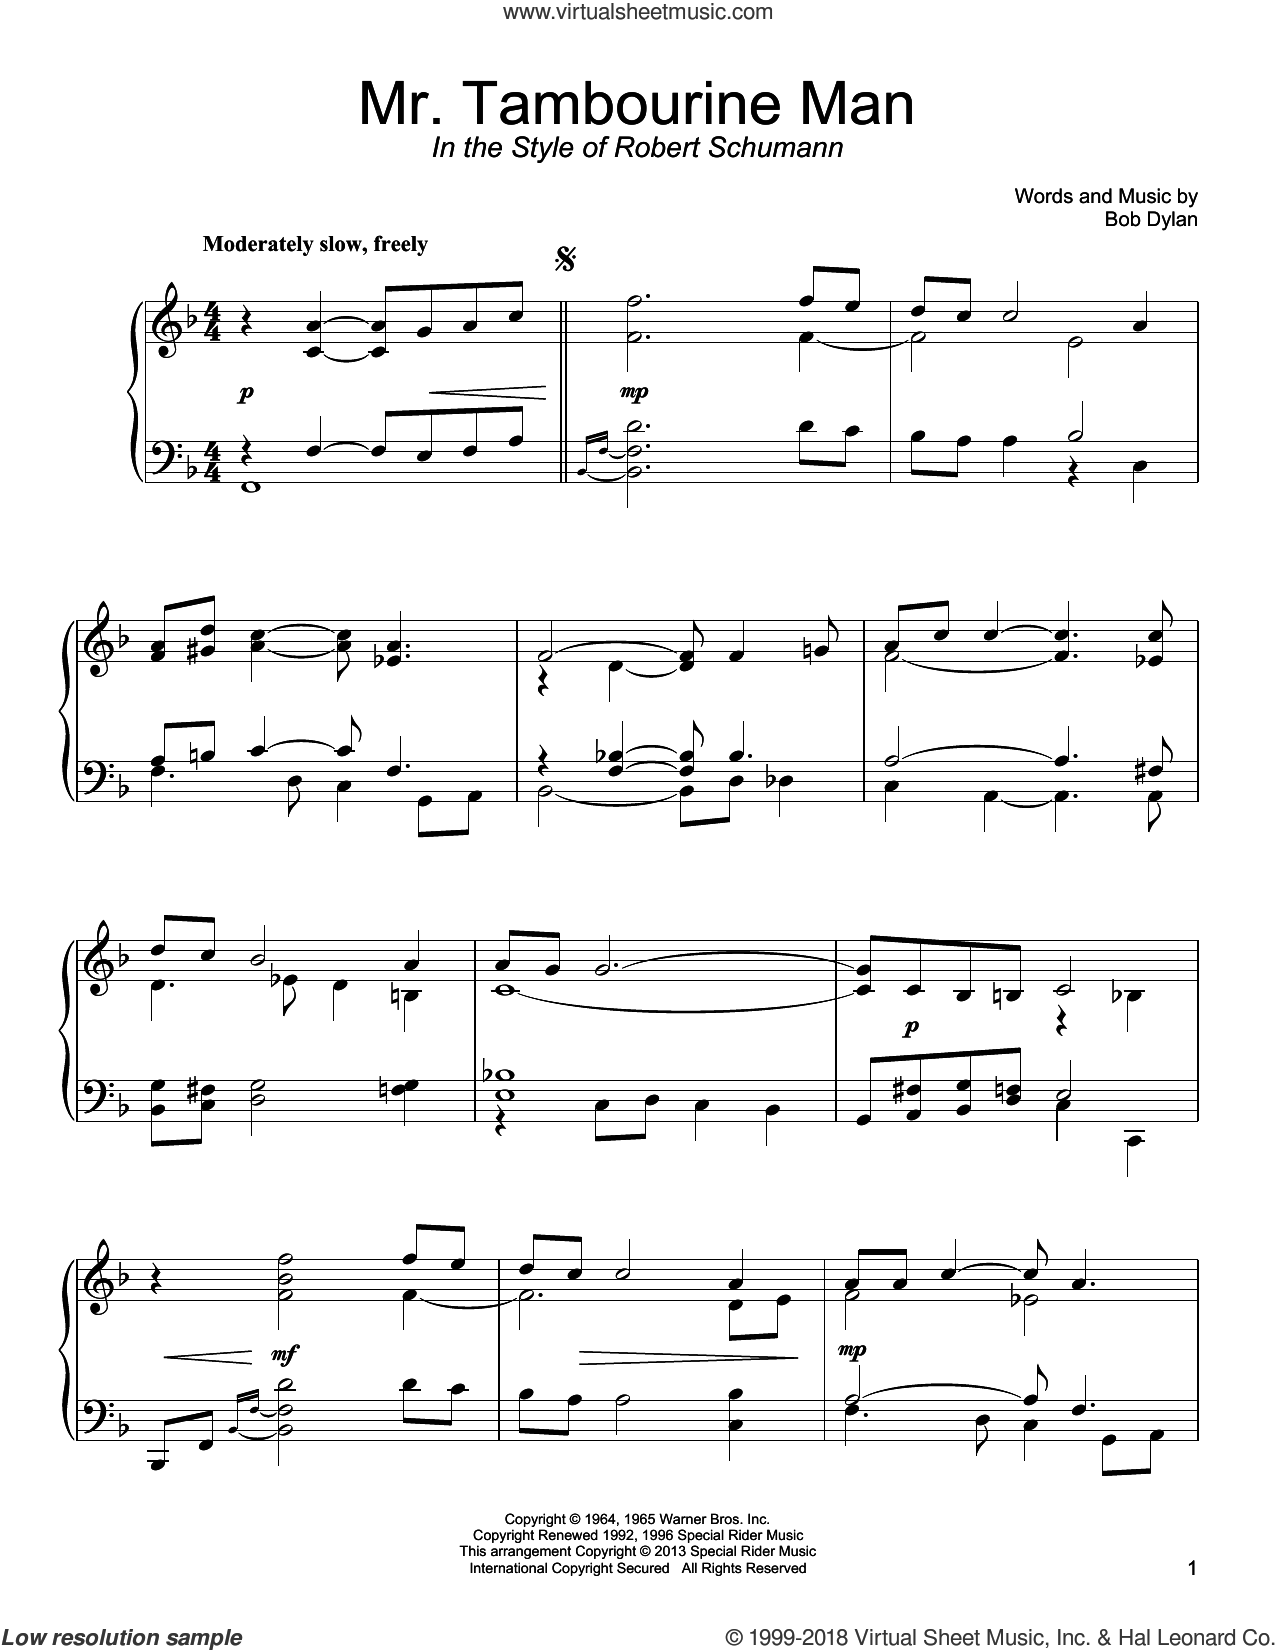 Mr. Tambourine Man sheet music for piano solo by Bob Dylan, classical score, intermediate skill level